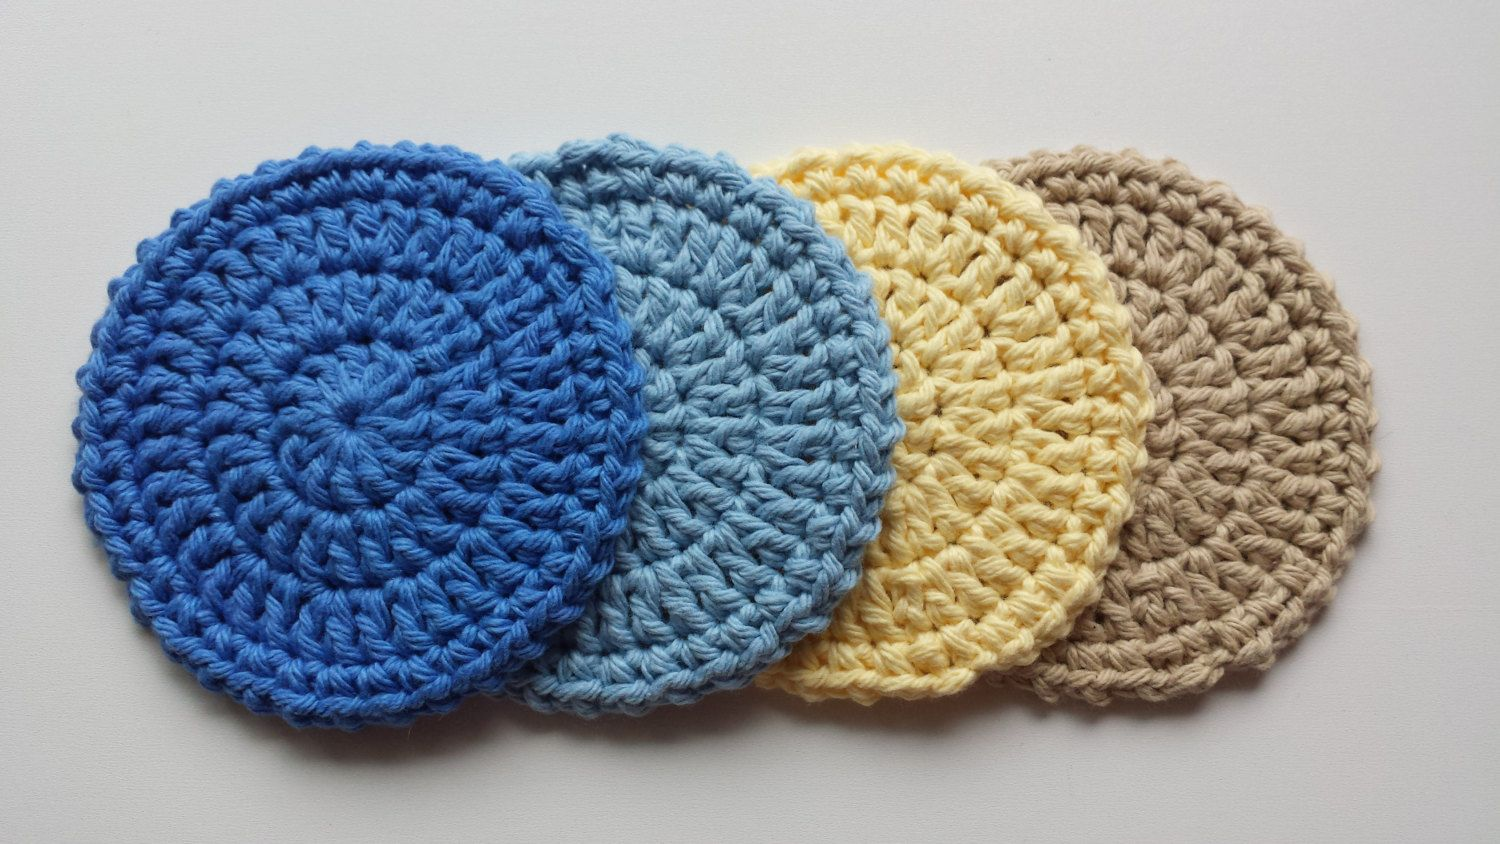 Crochet Coasters - Set of 4 - Seashore Mix by LuckyfootDesigns on Etsy